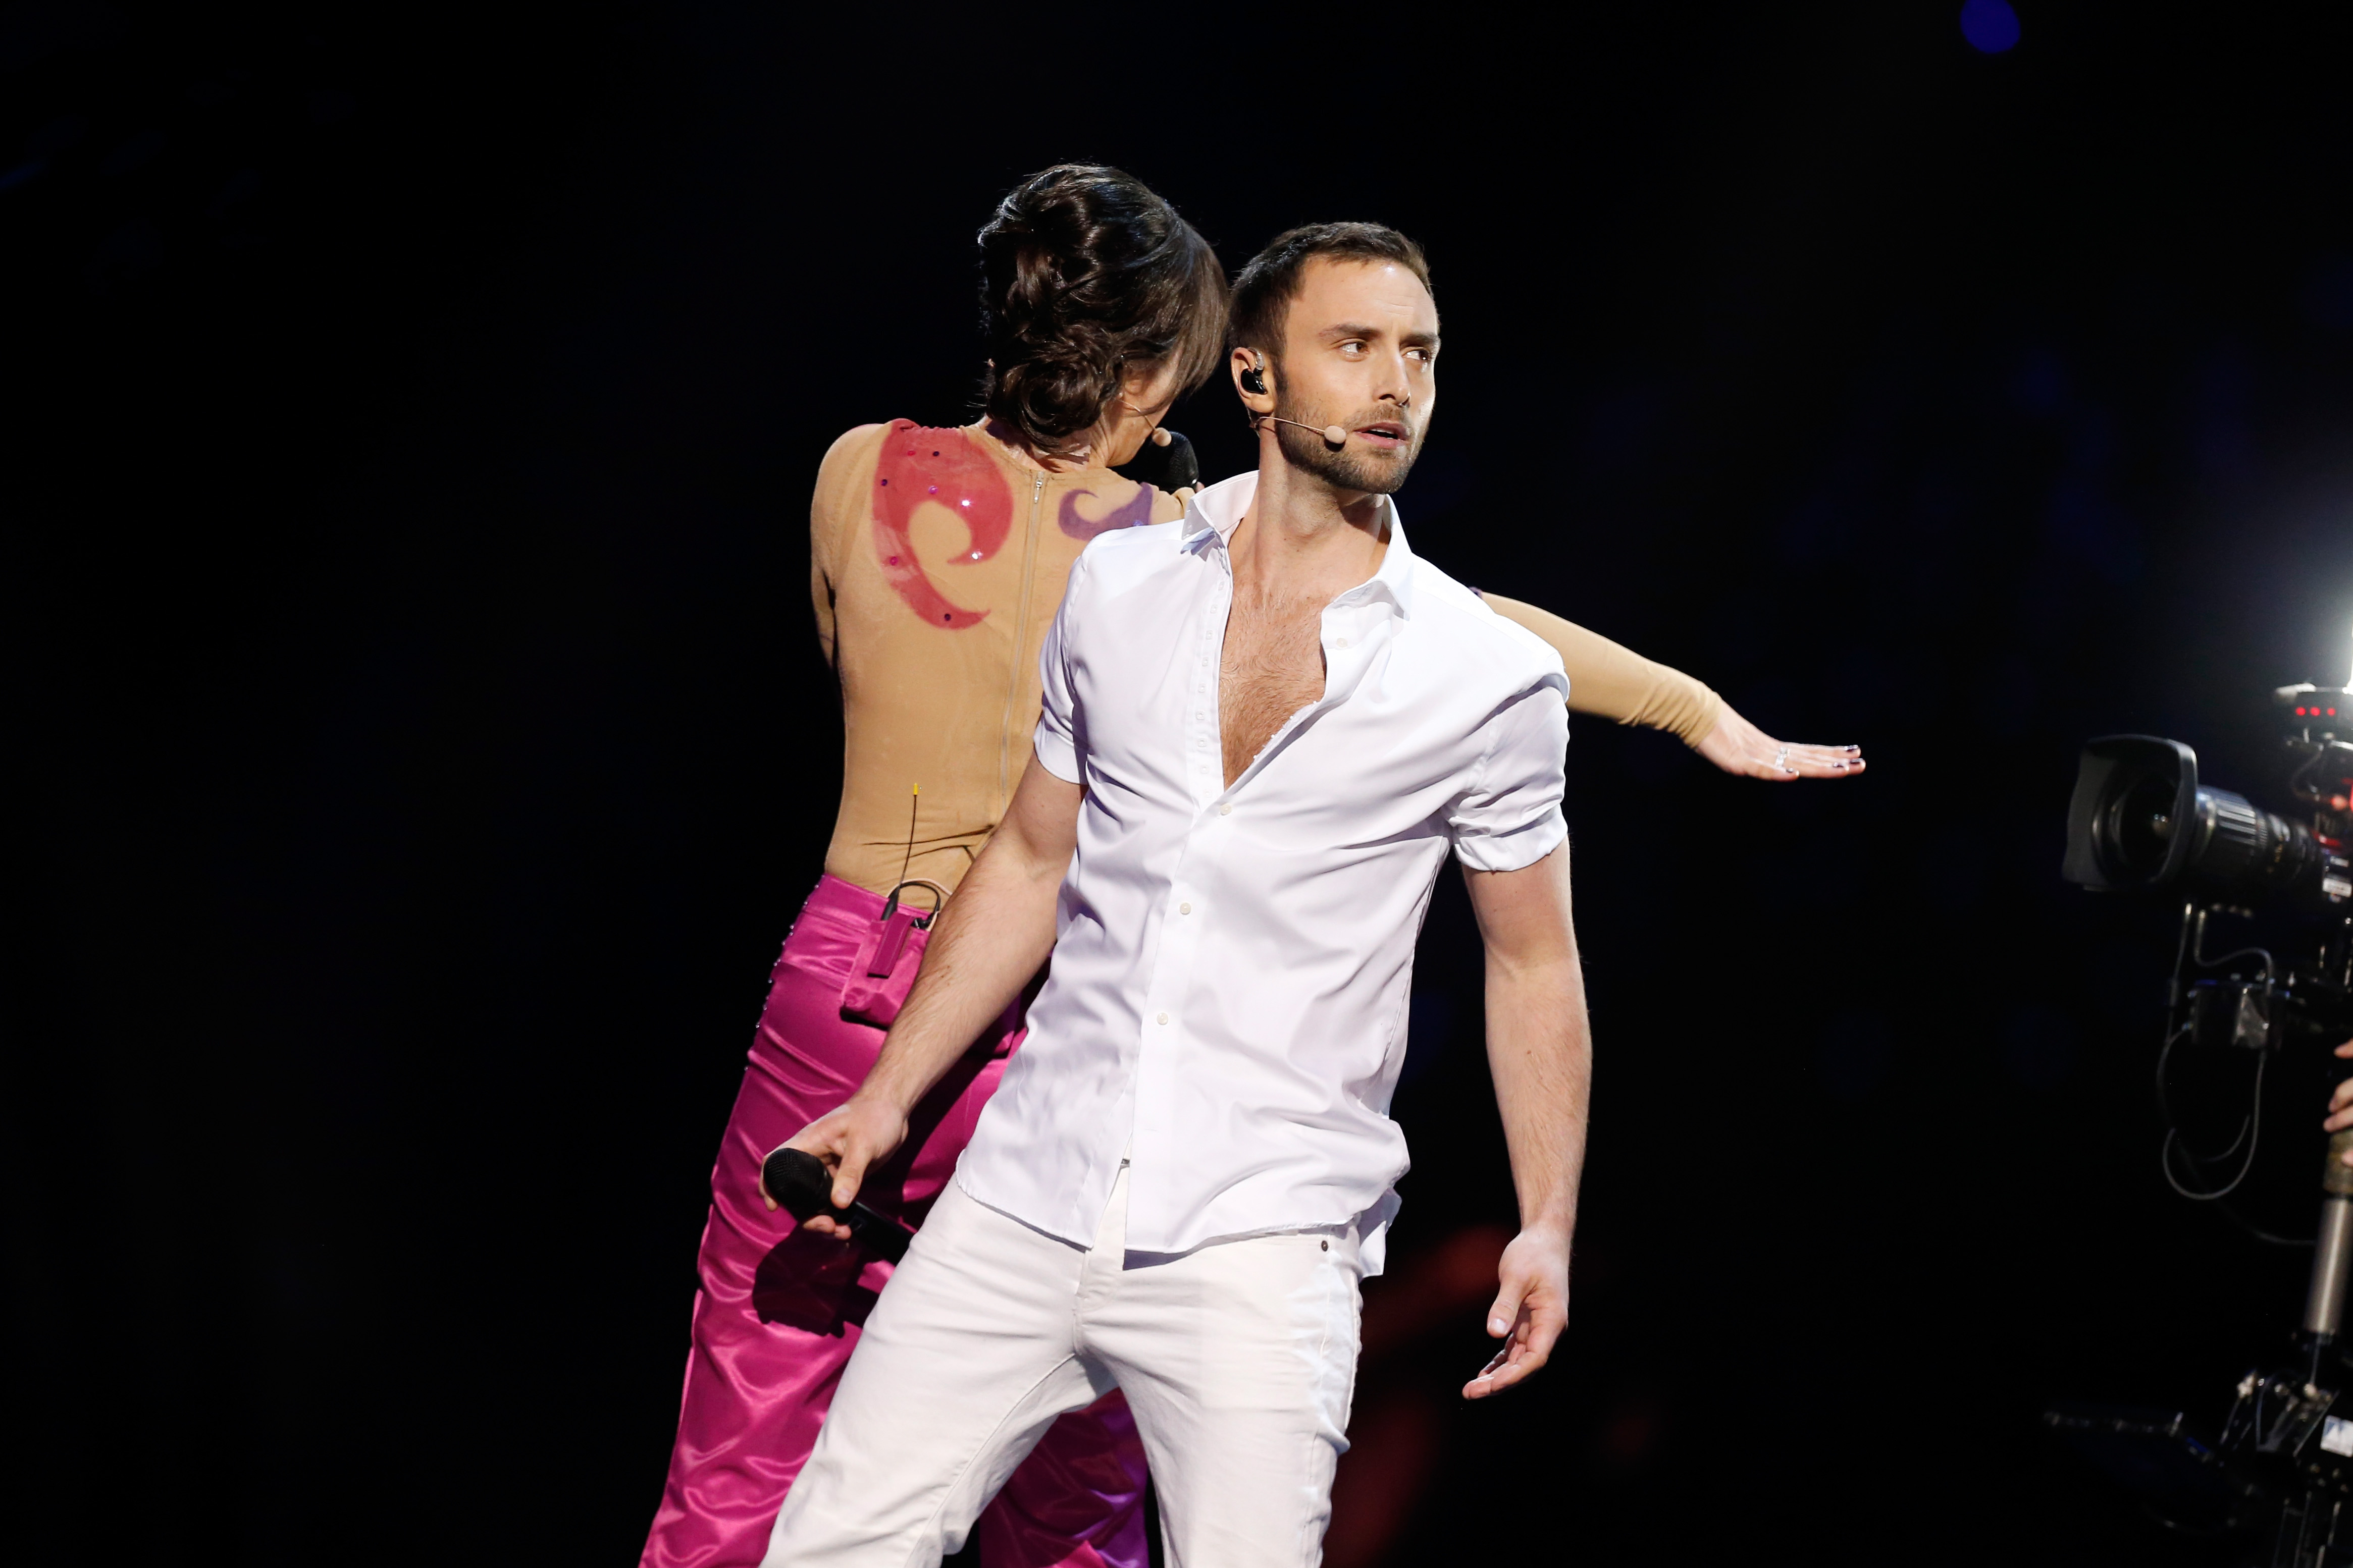 Mans Zelmerlow Eurovision Song Contest 2016 - Final